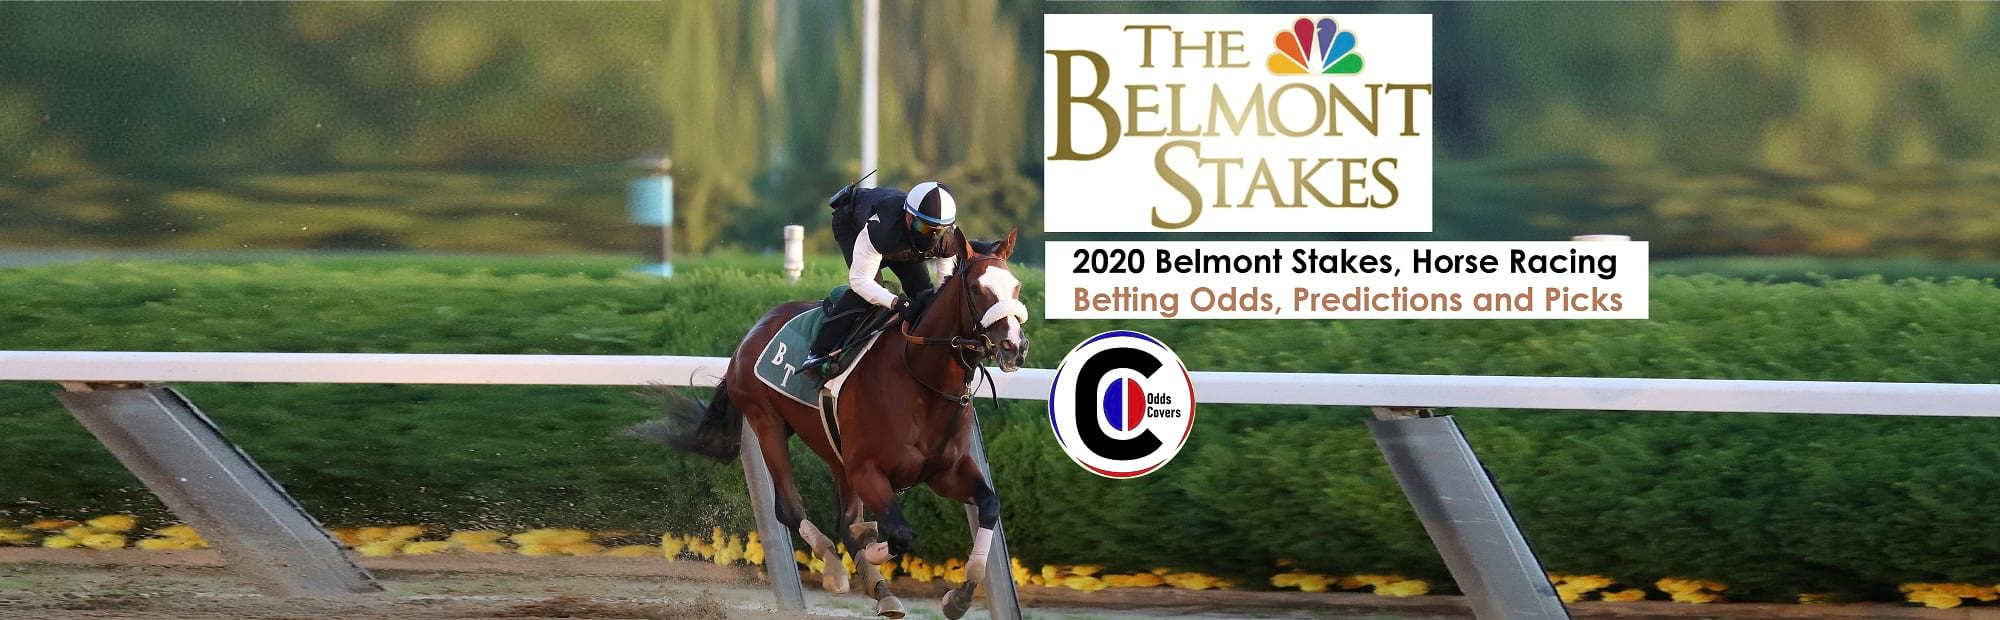 Belmont stakes 2021 betting odds bet on cricket online